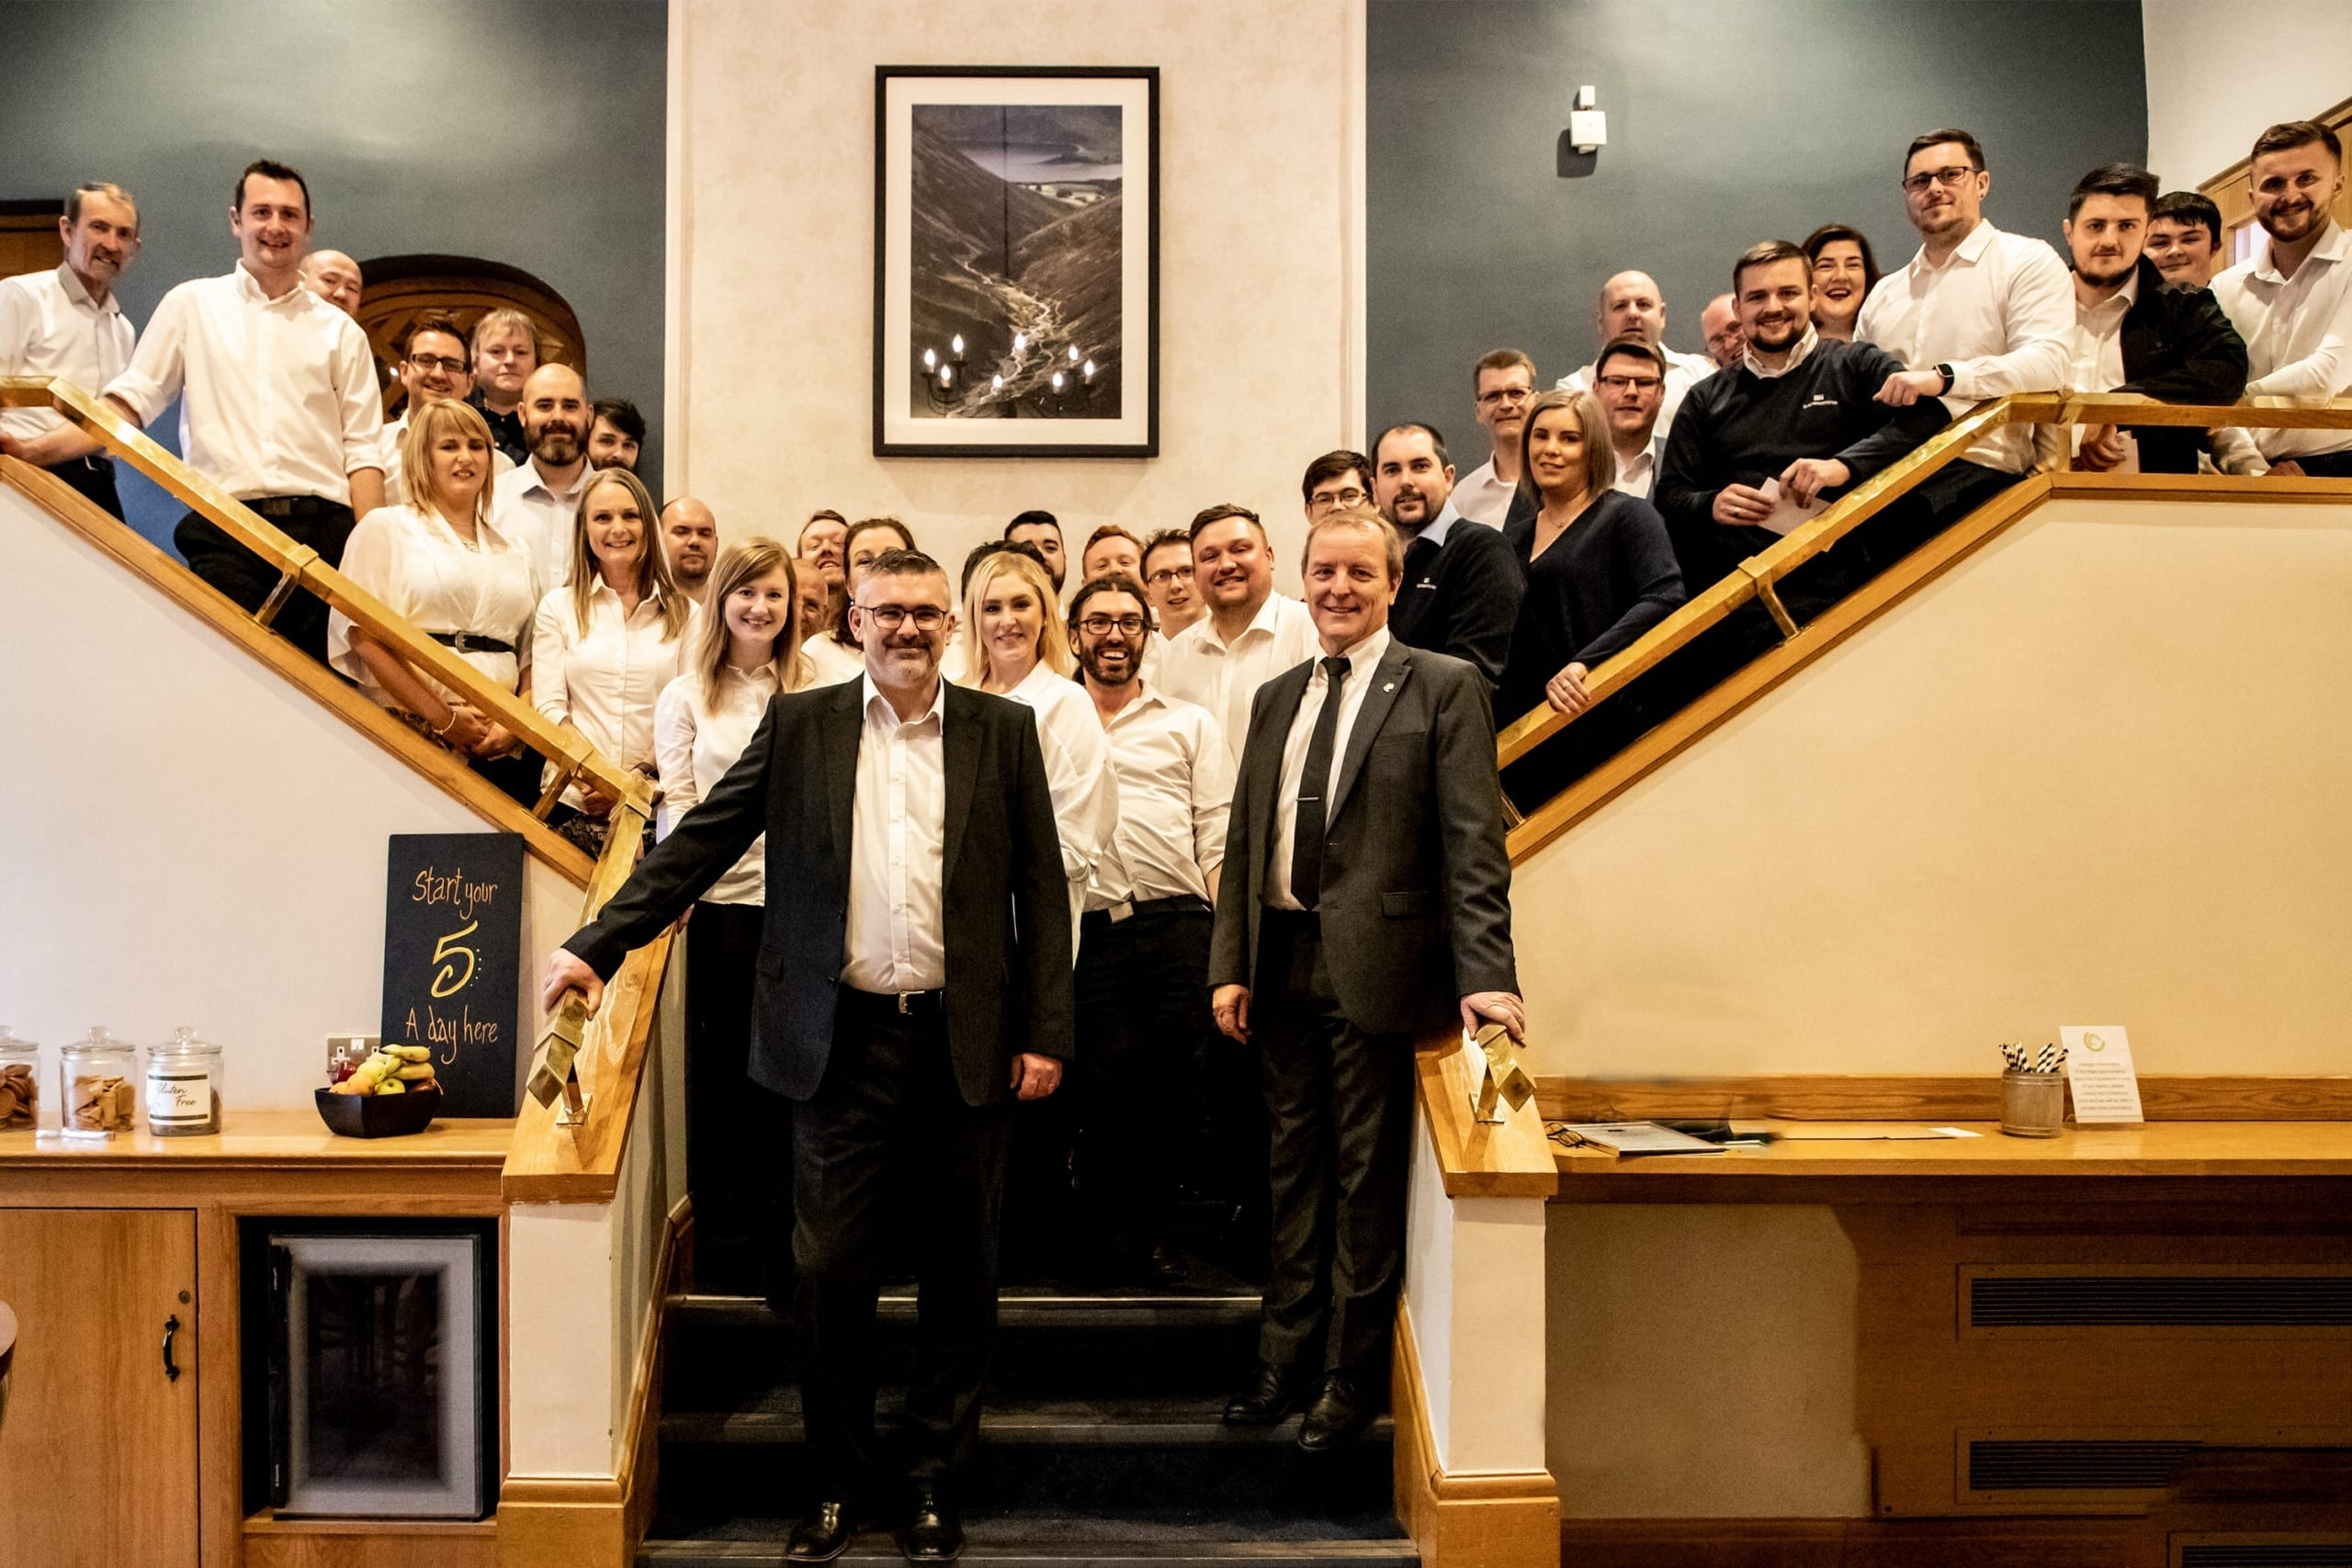 Business Micros | BM303 The team at Business Micros is celebrating 40 years in 2019 scaled